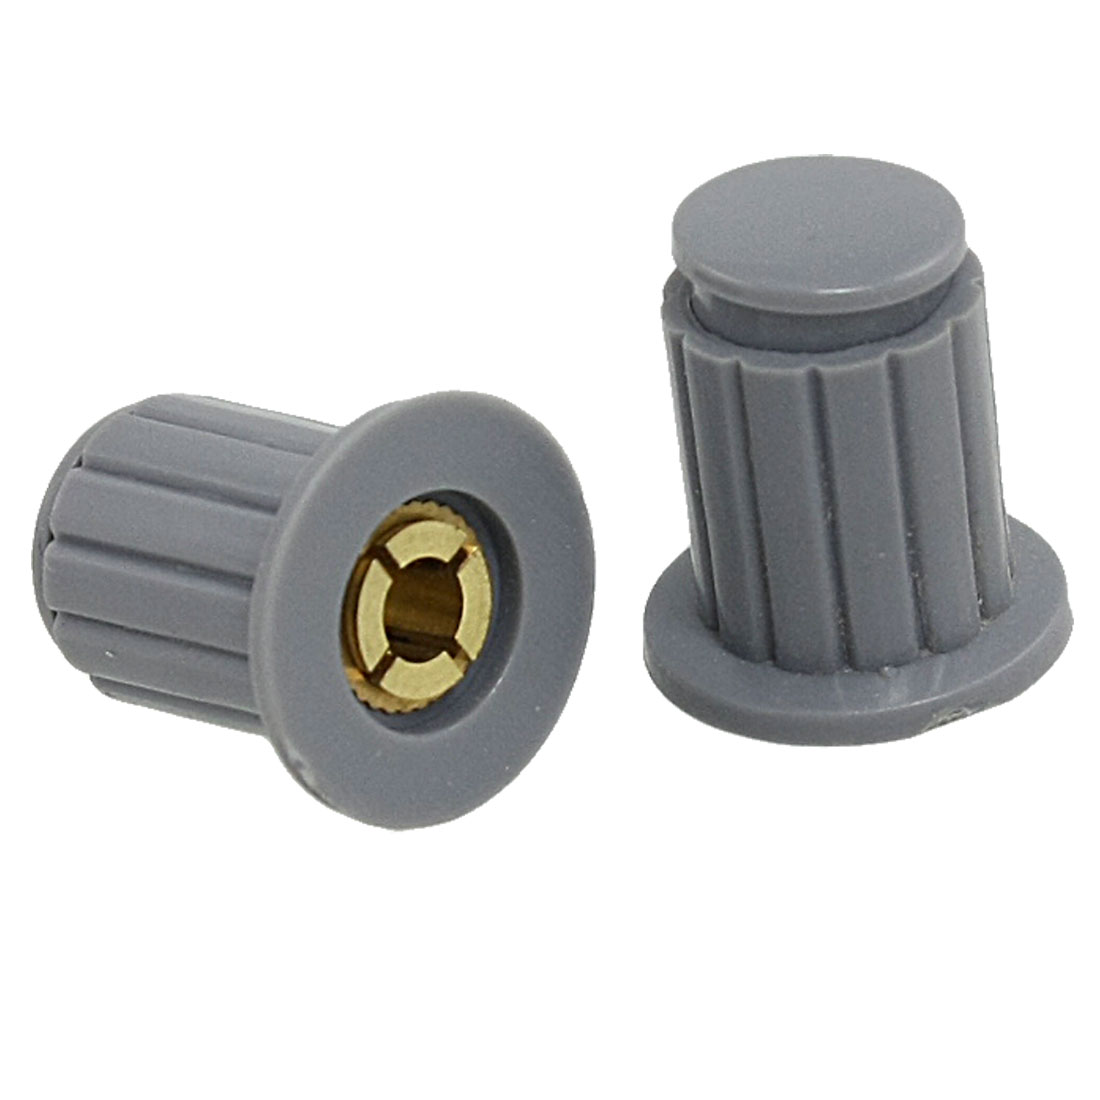 10 Pcs Gray Ribbed Grip 4mm Split Shaft Potentiometer Control Knobs